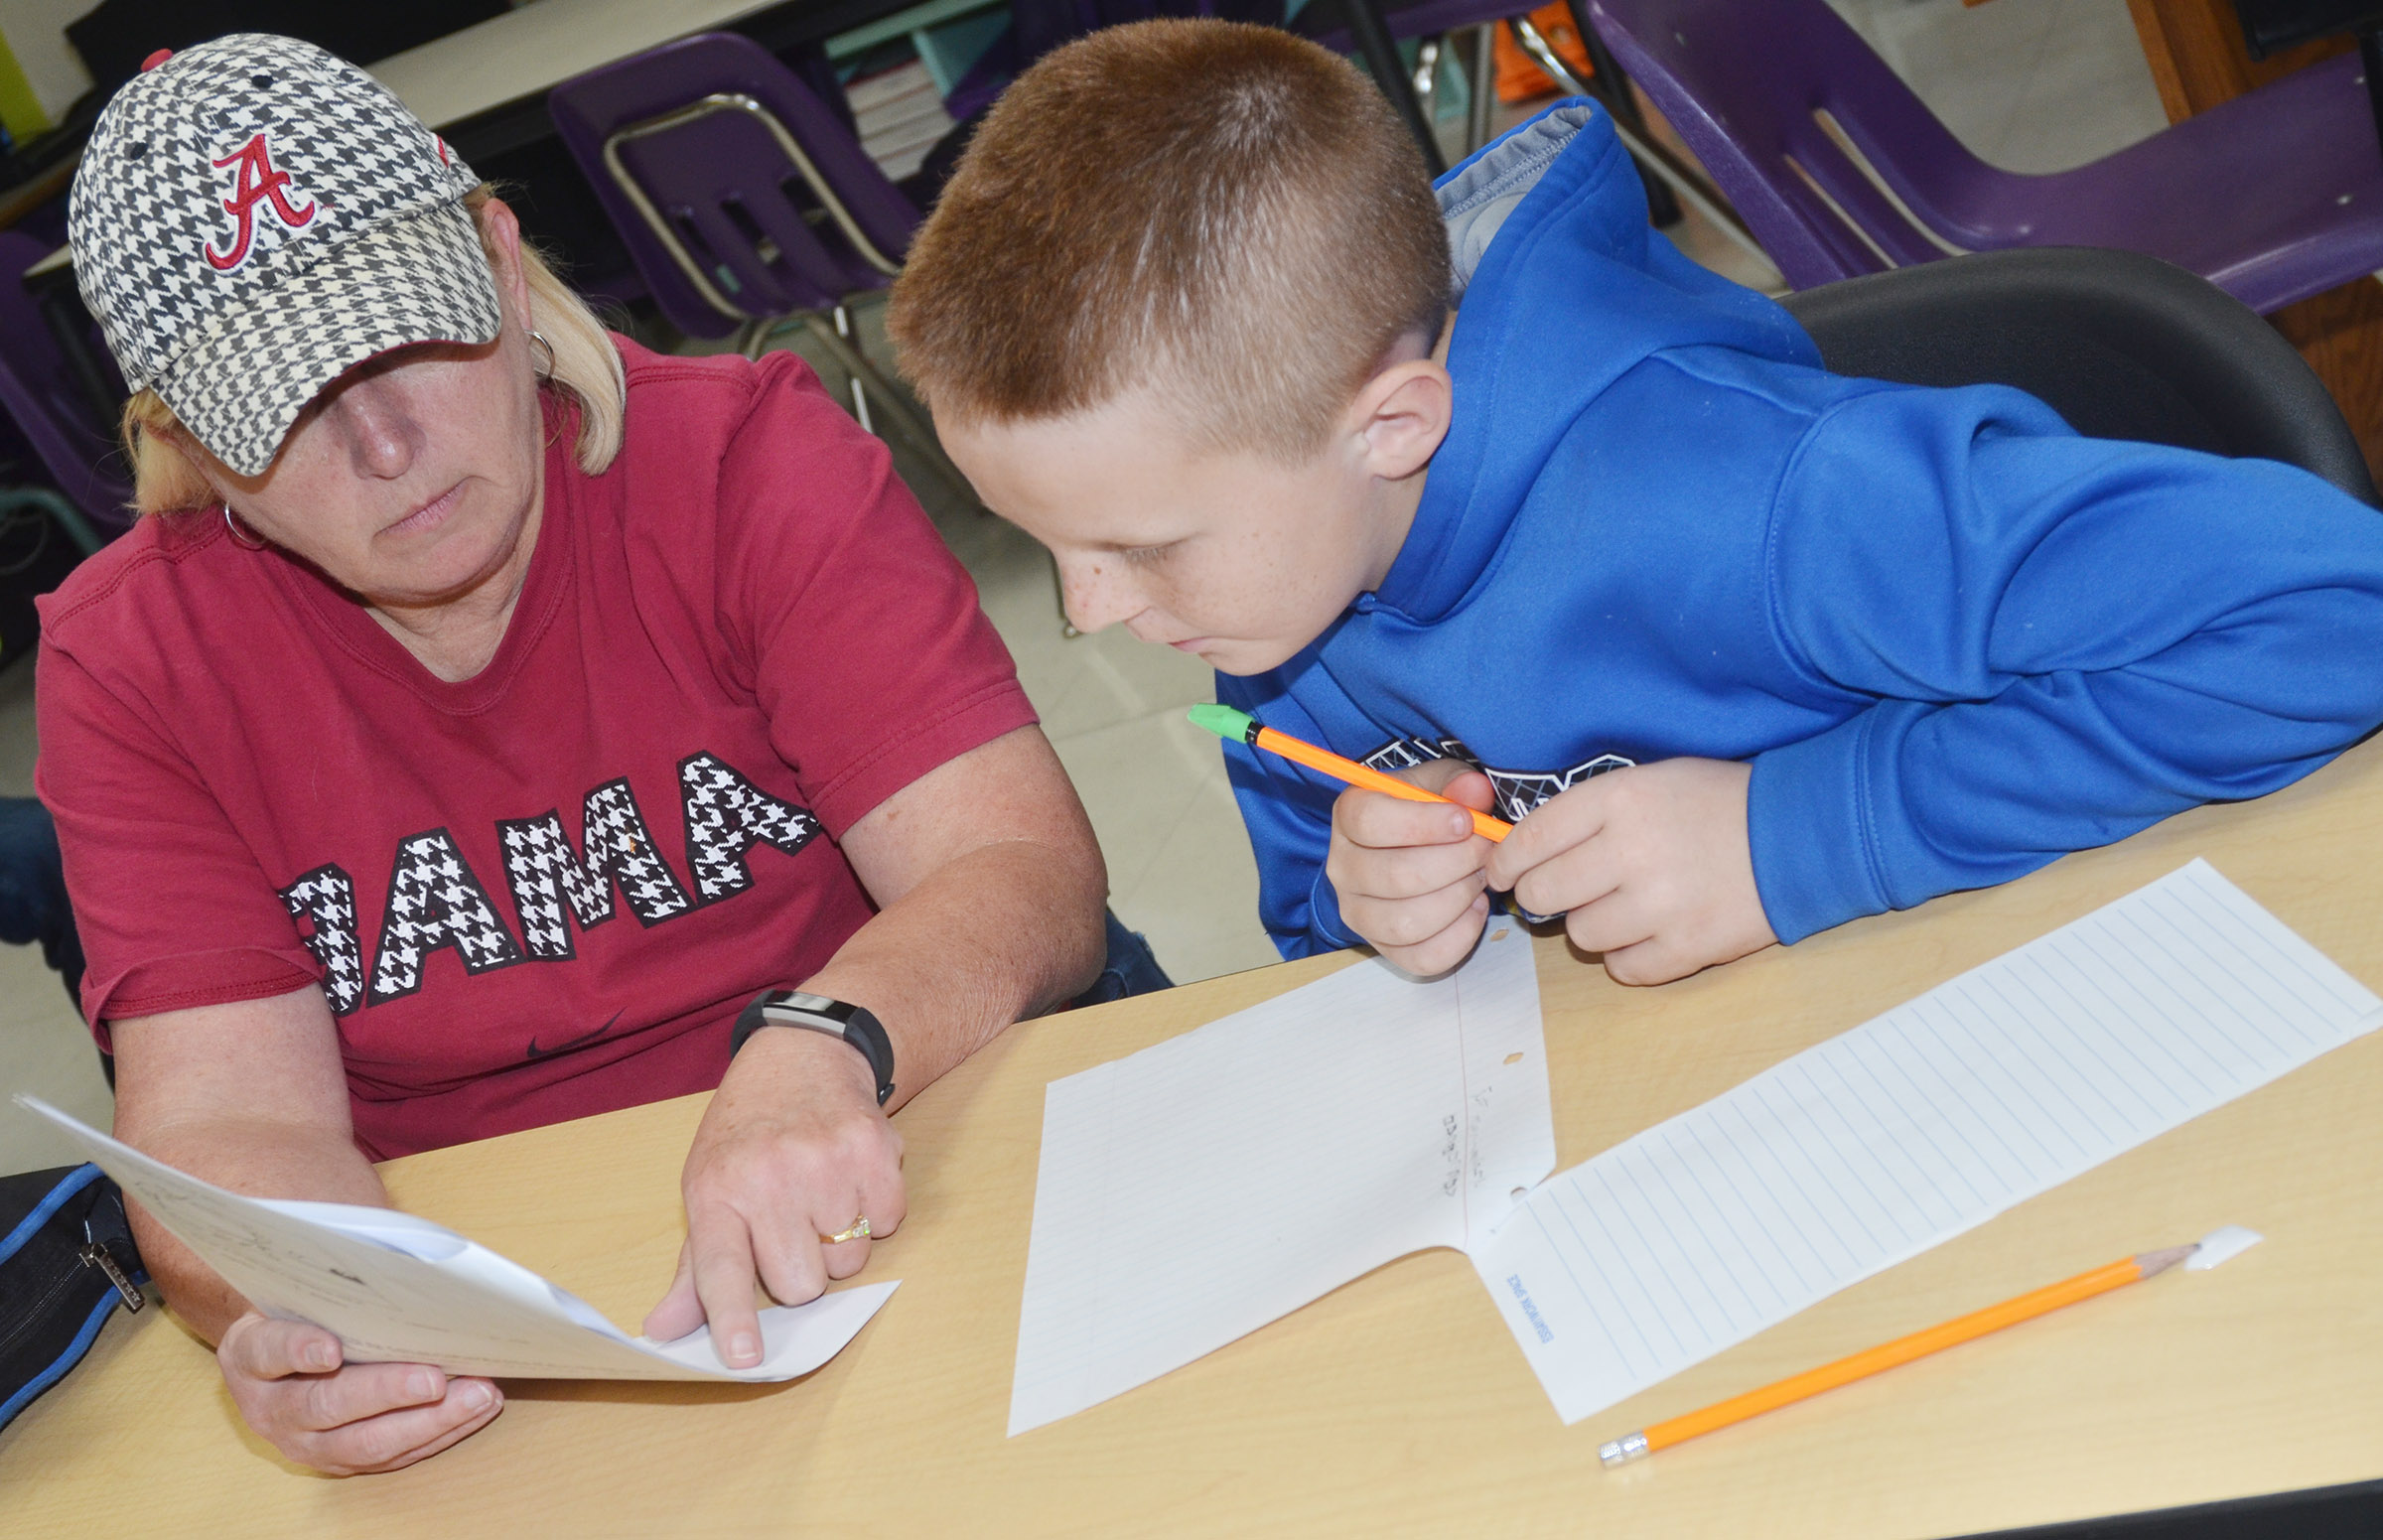 CMS sixth-grade teacher Jan Speer works with Jason Jeffries during the after-school study session on Friday, Oct. 27.